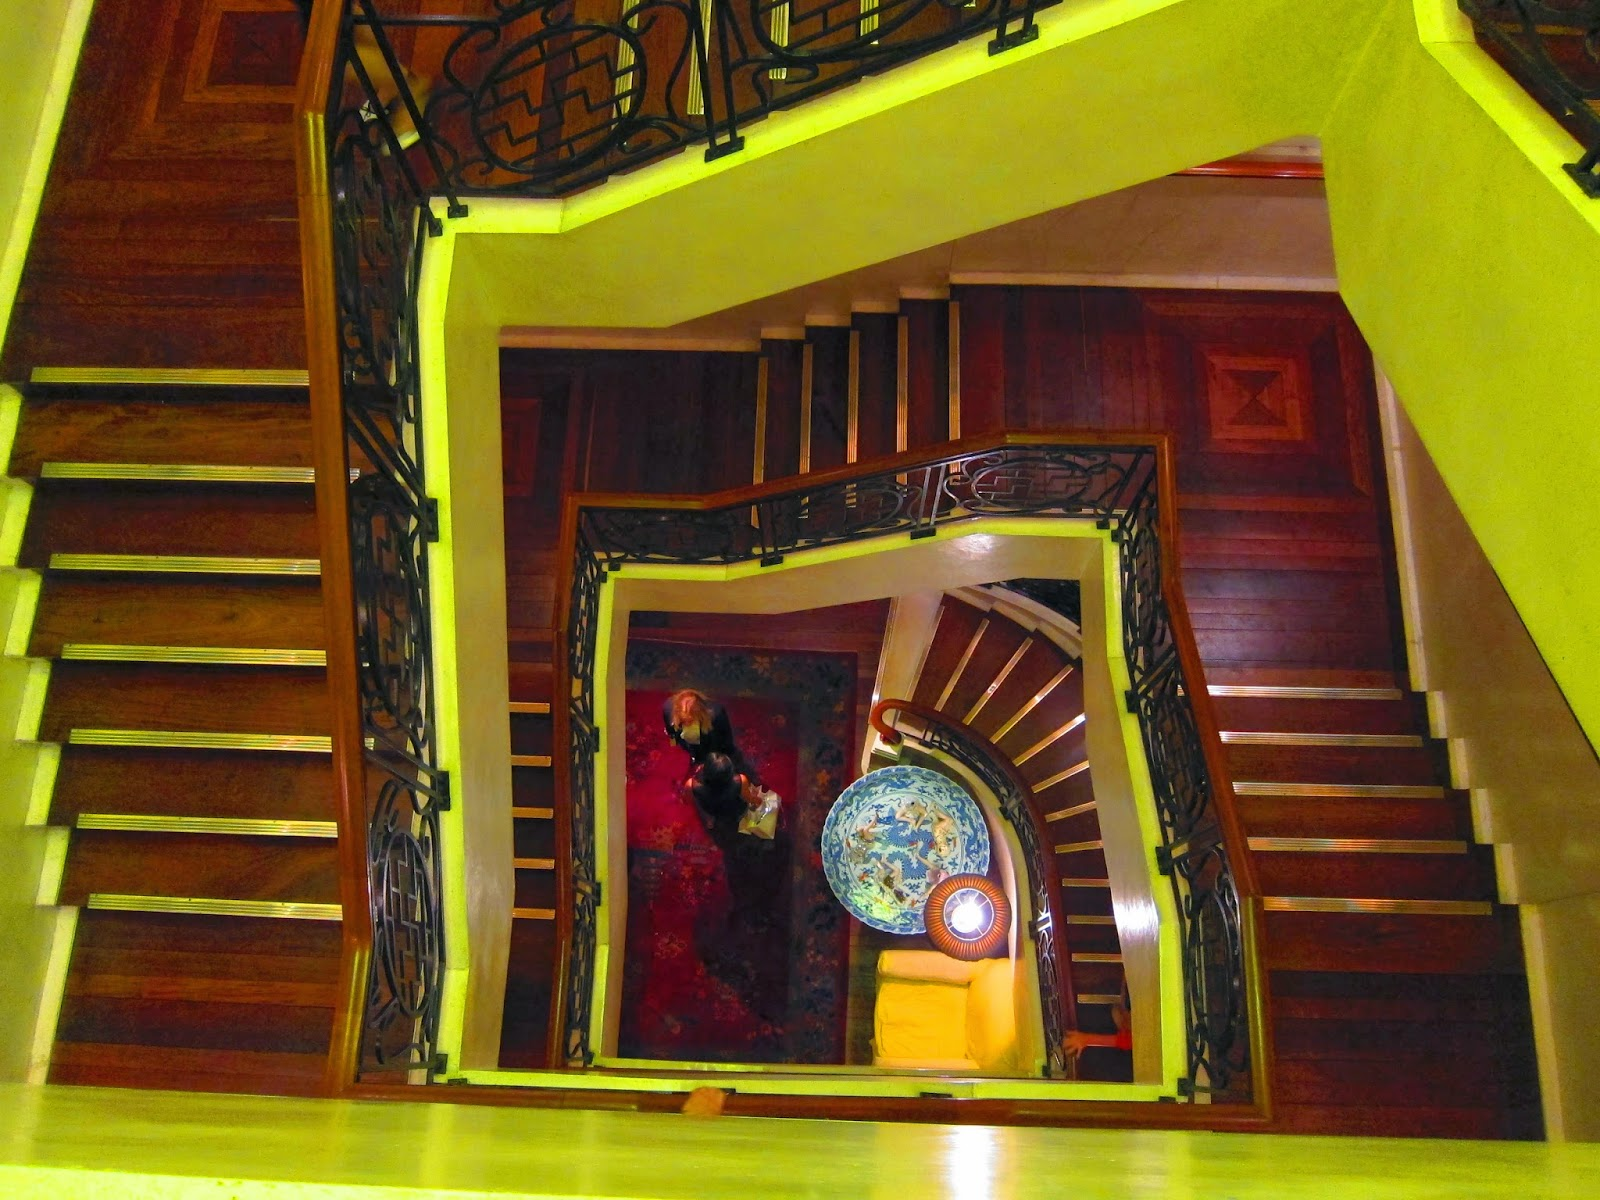 China Club staircase Hong Kong